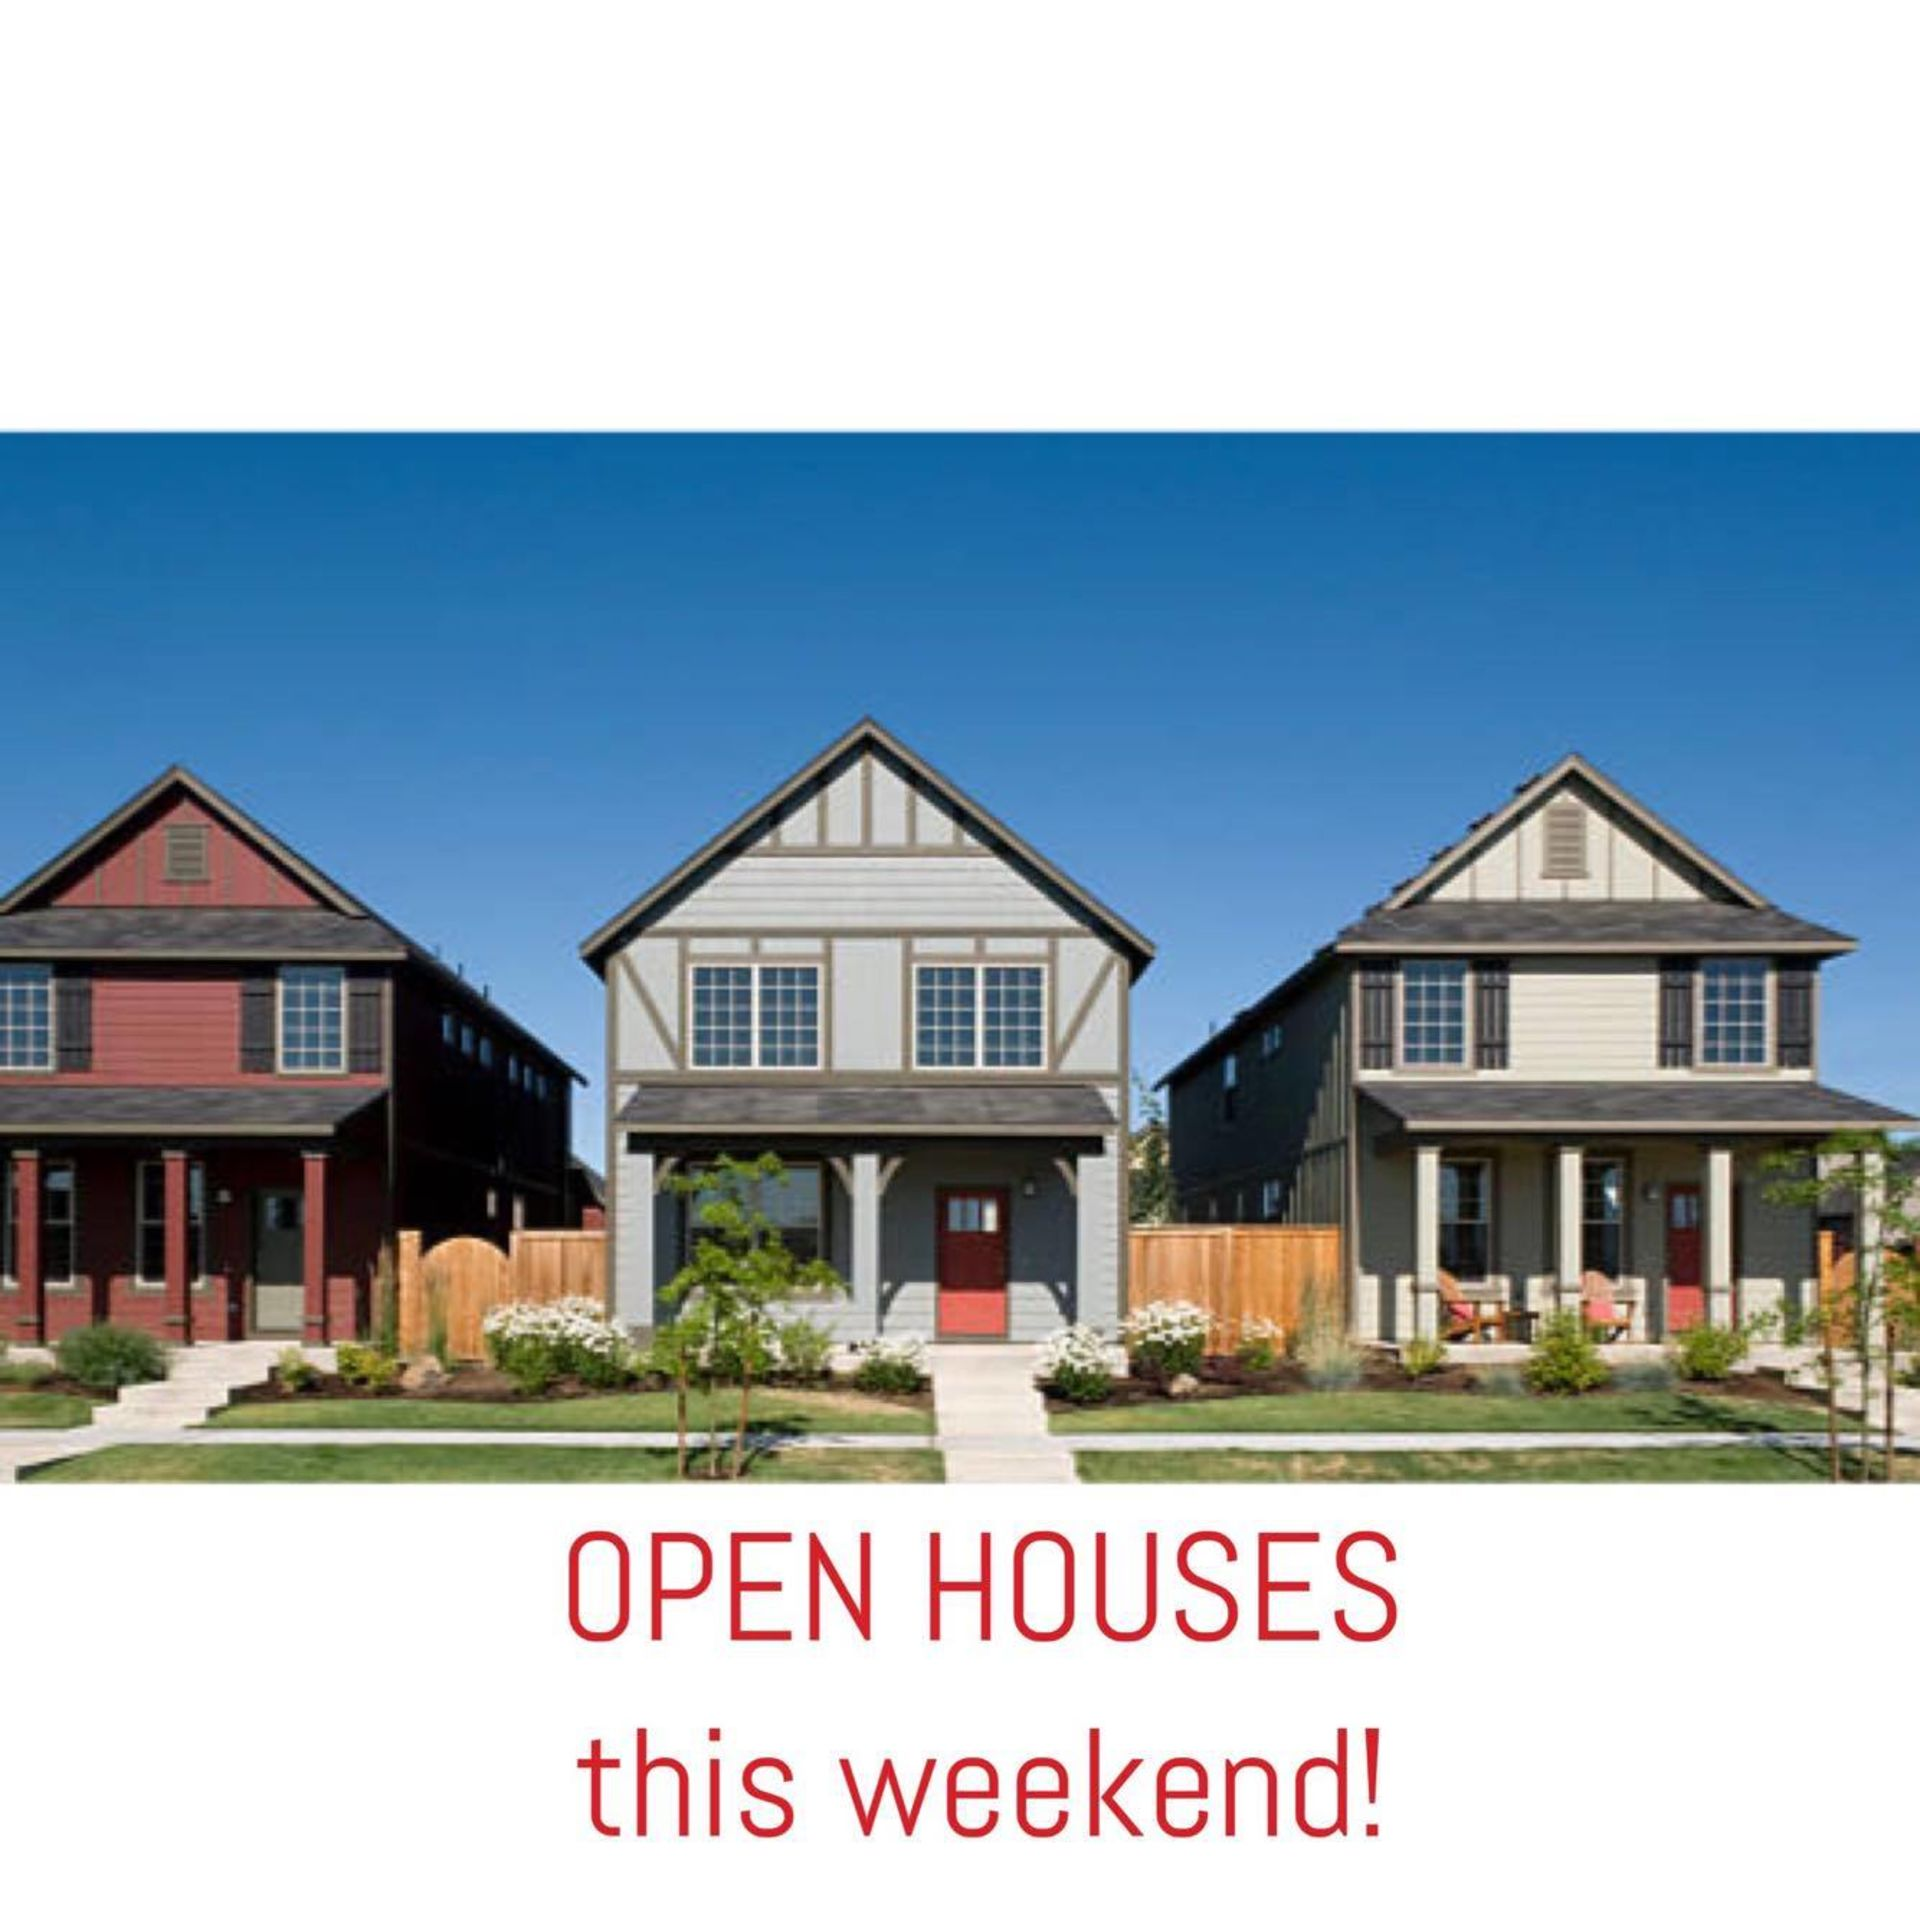 OPEN HOUSES THIS WEEKEND Dec 2 & 3 in WNY